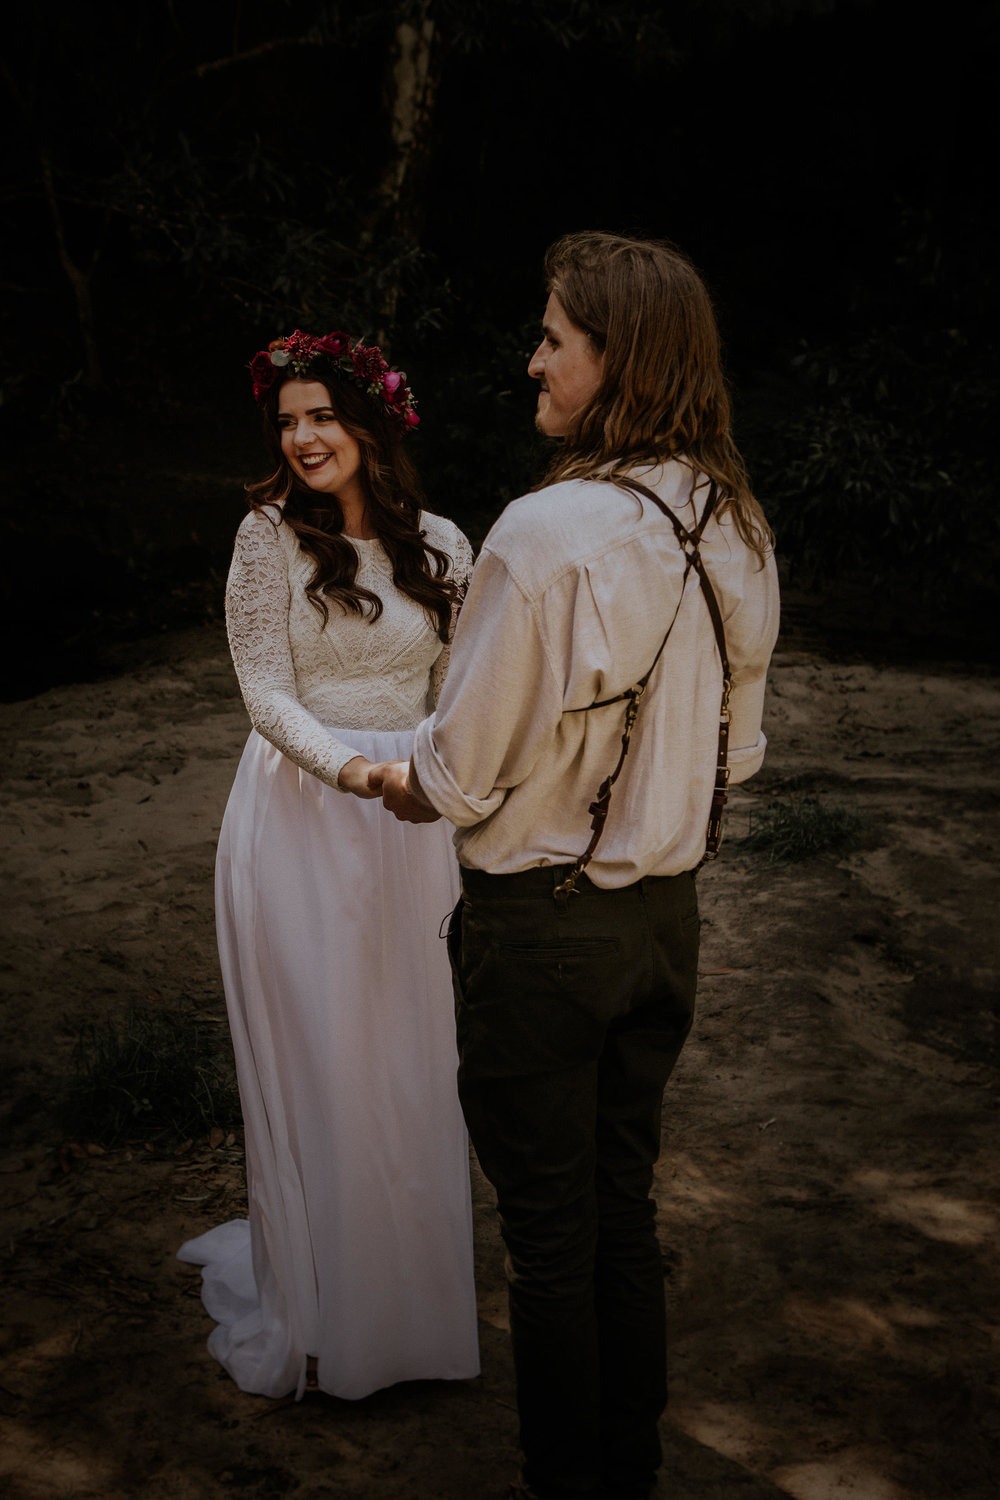 beth & caleb - kings & thieves elopement wedding photography -- submission 93.jpg